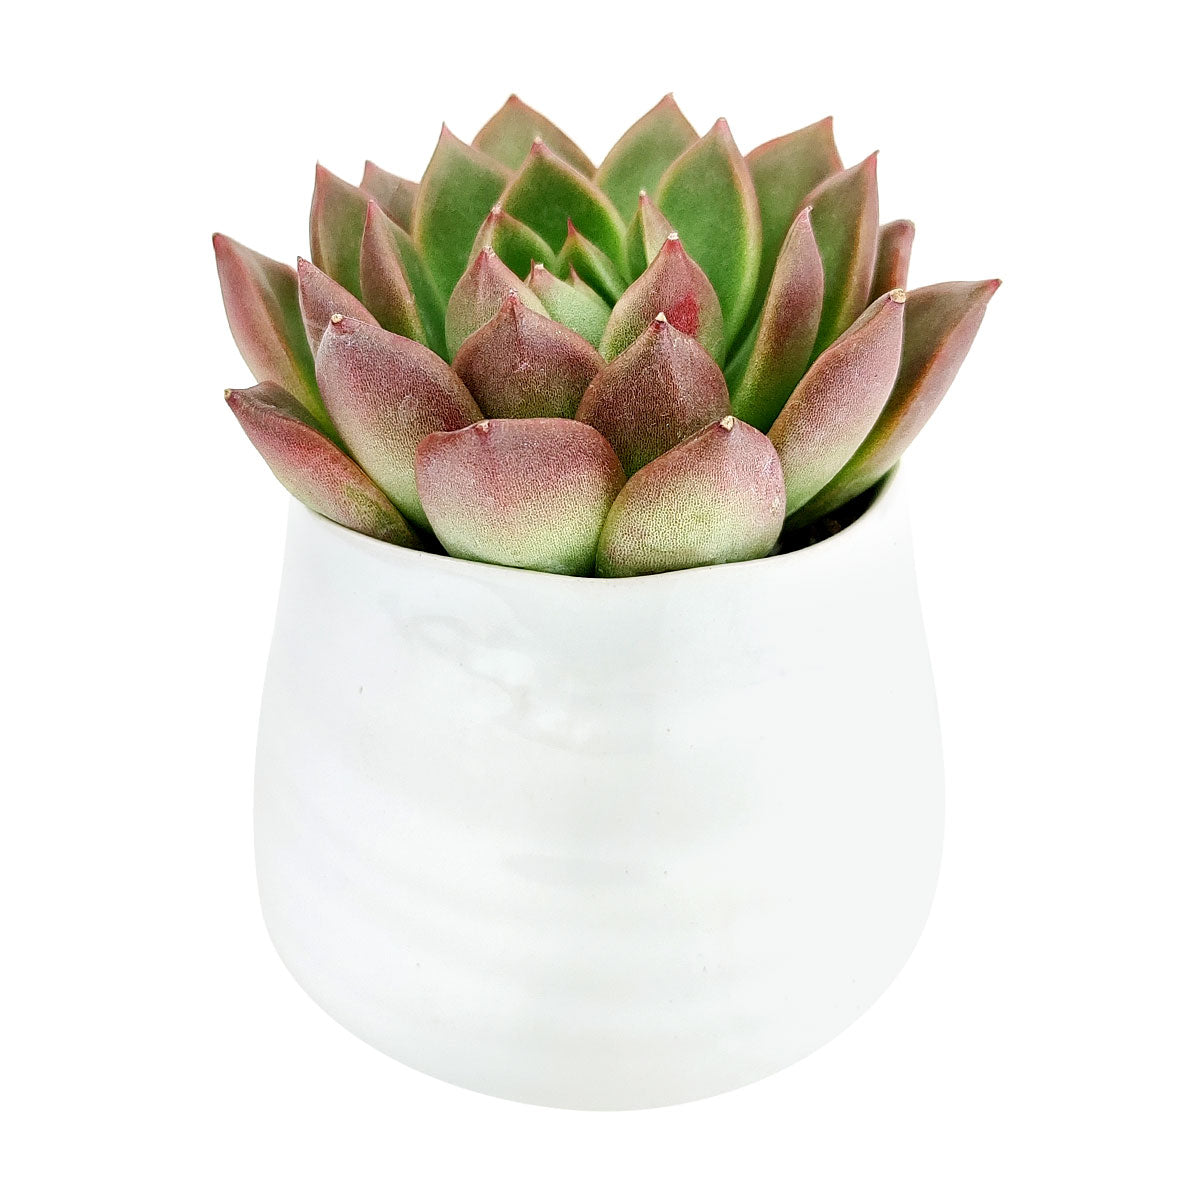 Wavy Ceramic Pot for sale, Small White Ceramic Pot for succulents and flowers, Modern style flower pot for sale, Succulent gift decor ideas